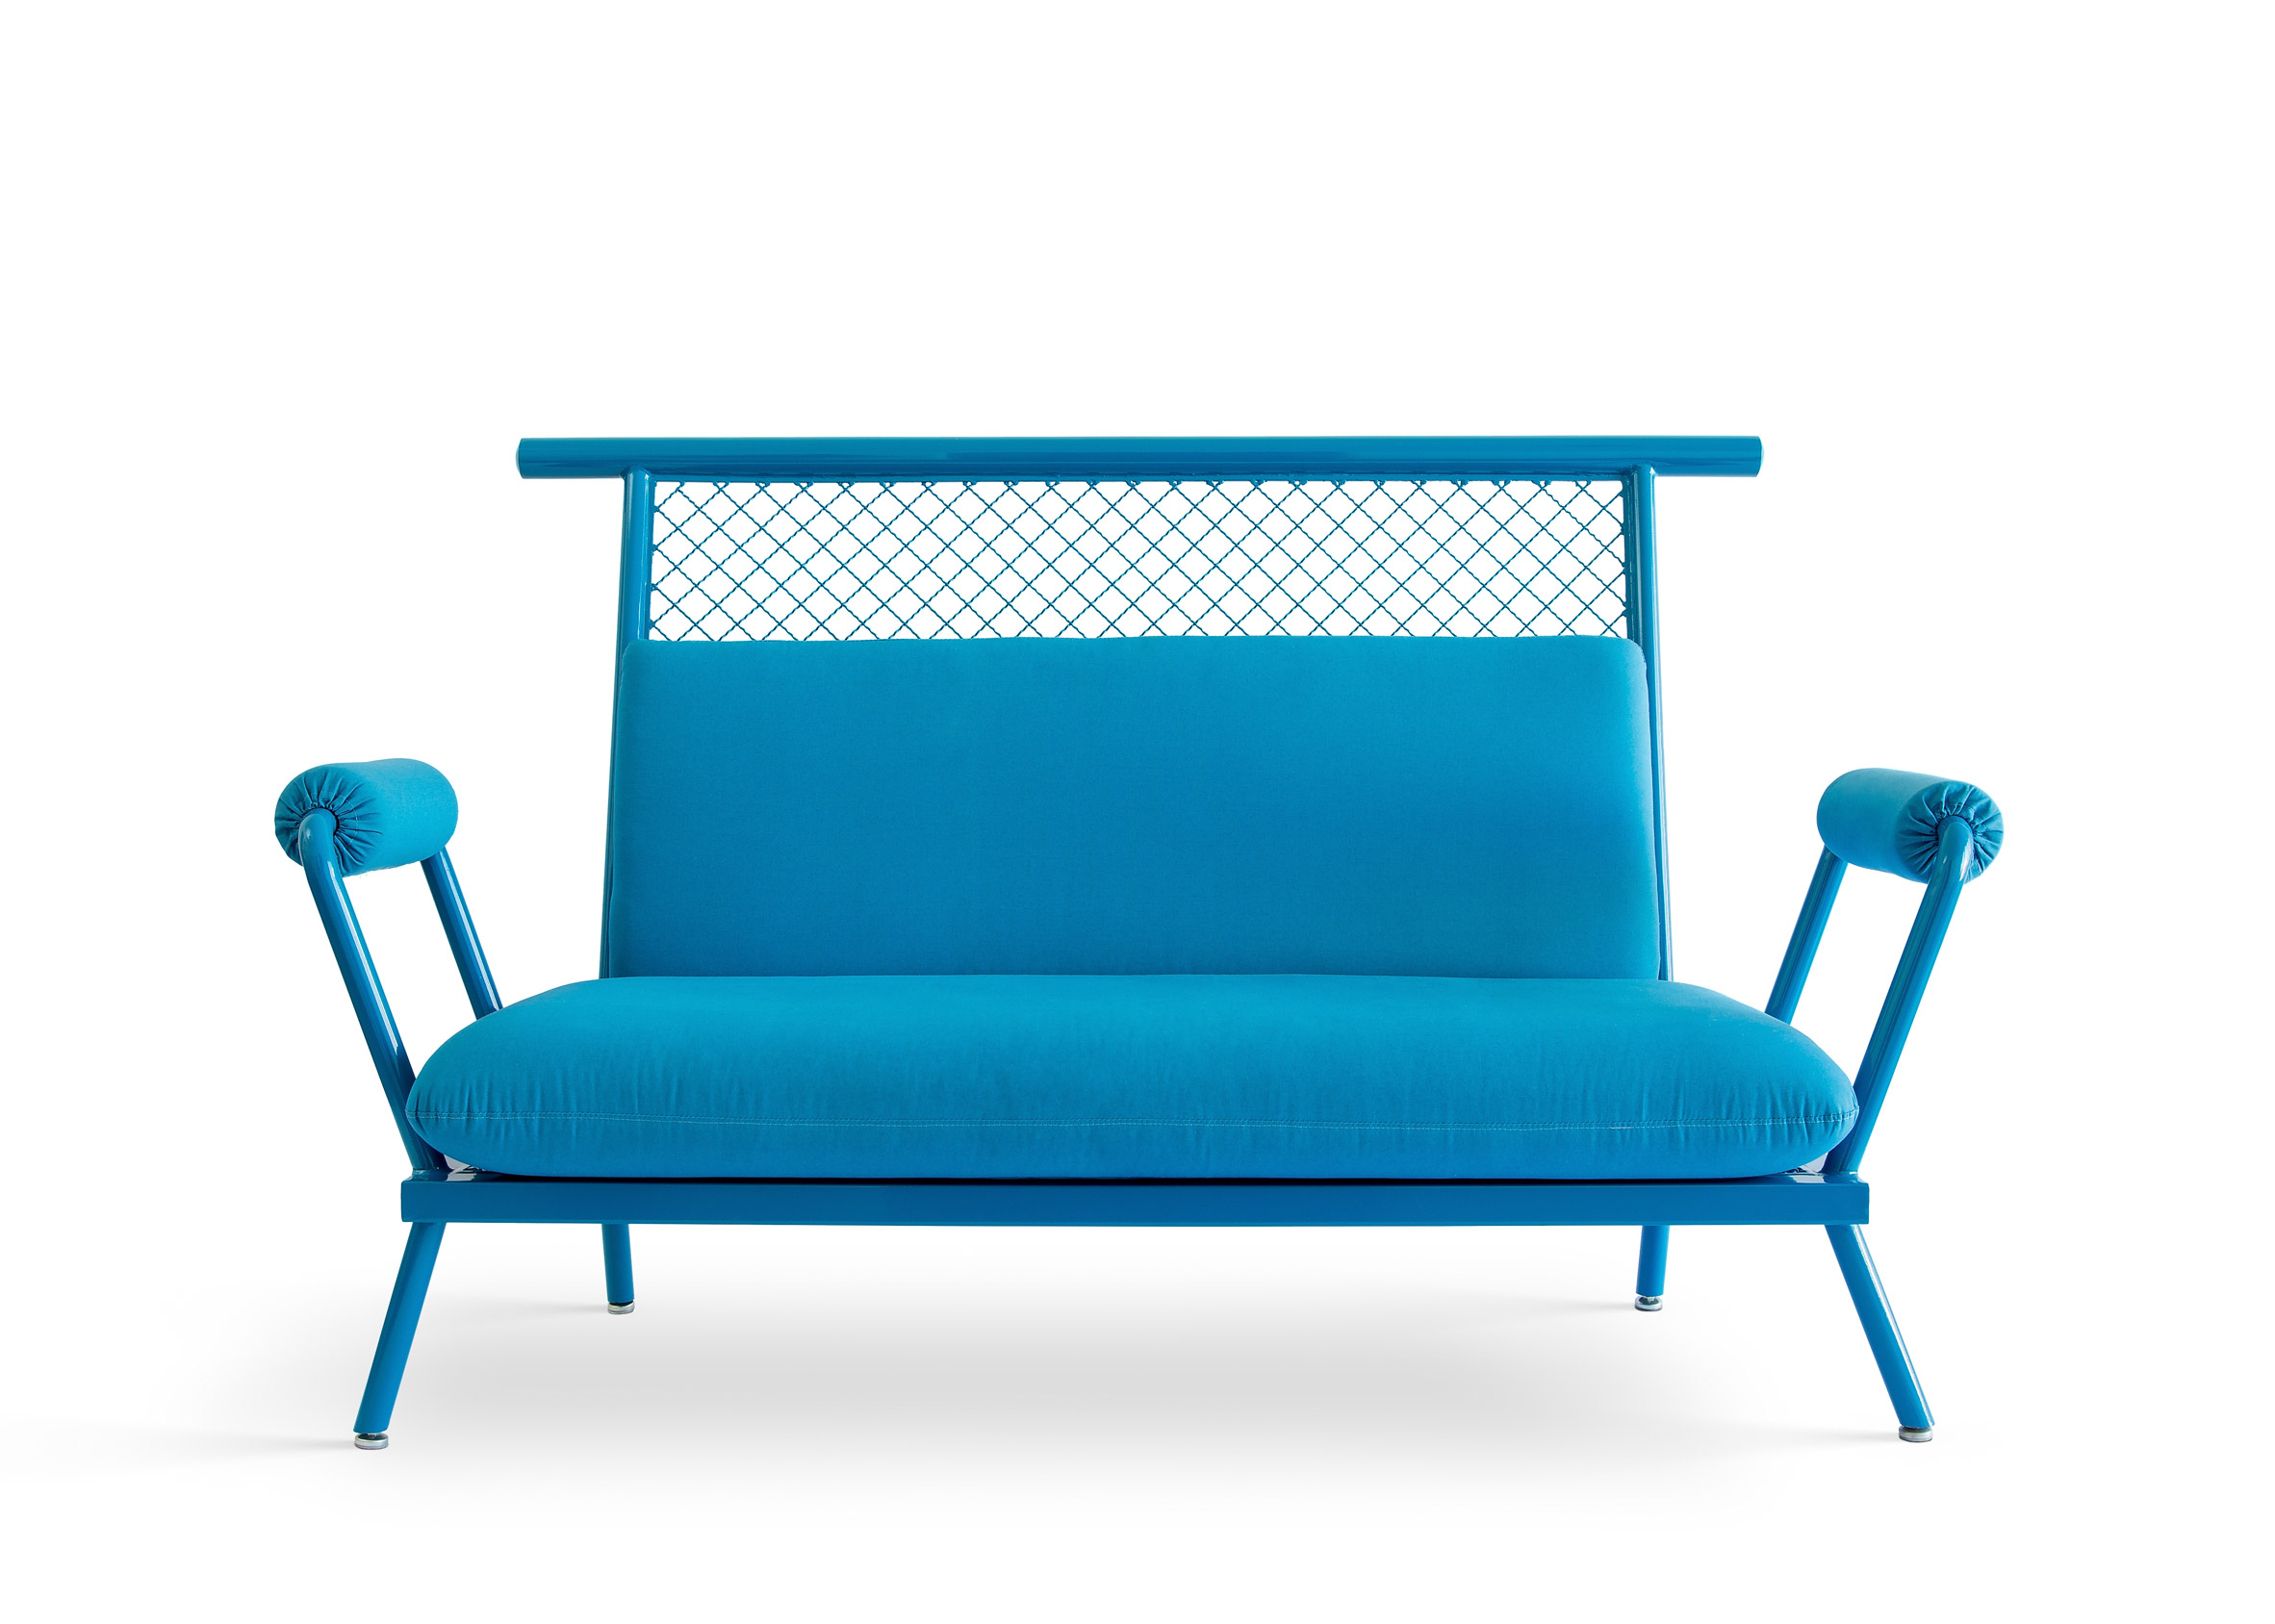 PK6 and PK7 furnitures signed by Studio Paulo Kobylka from Brasil